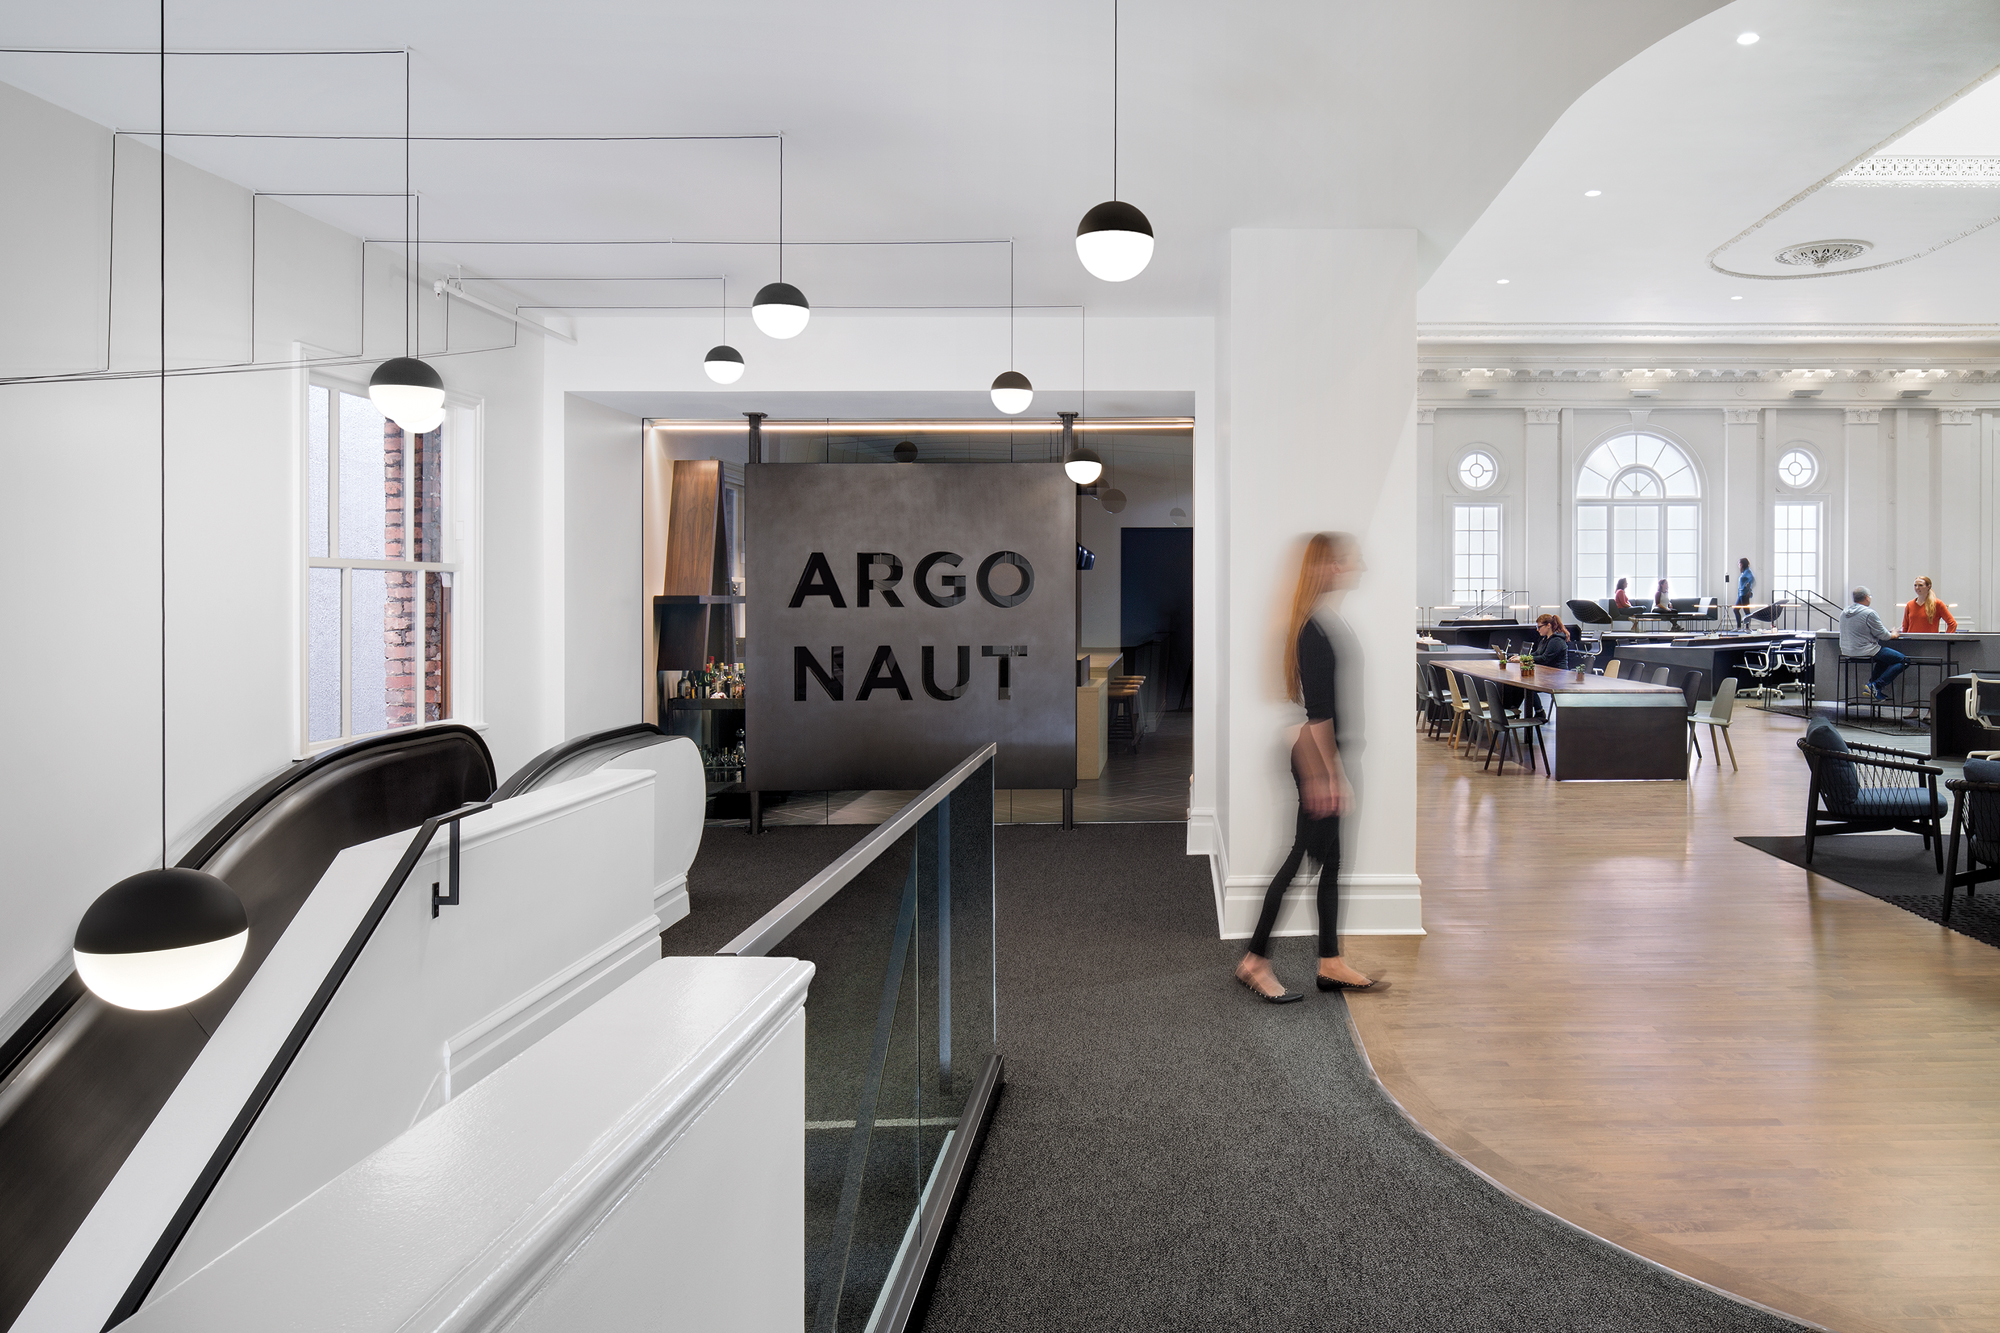 Argonaut by huntsman architectural group 2016 best of for Design companies in san francisco